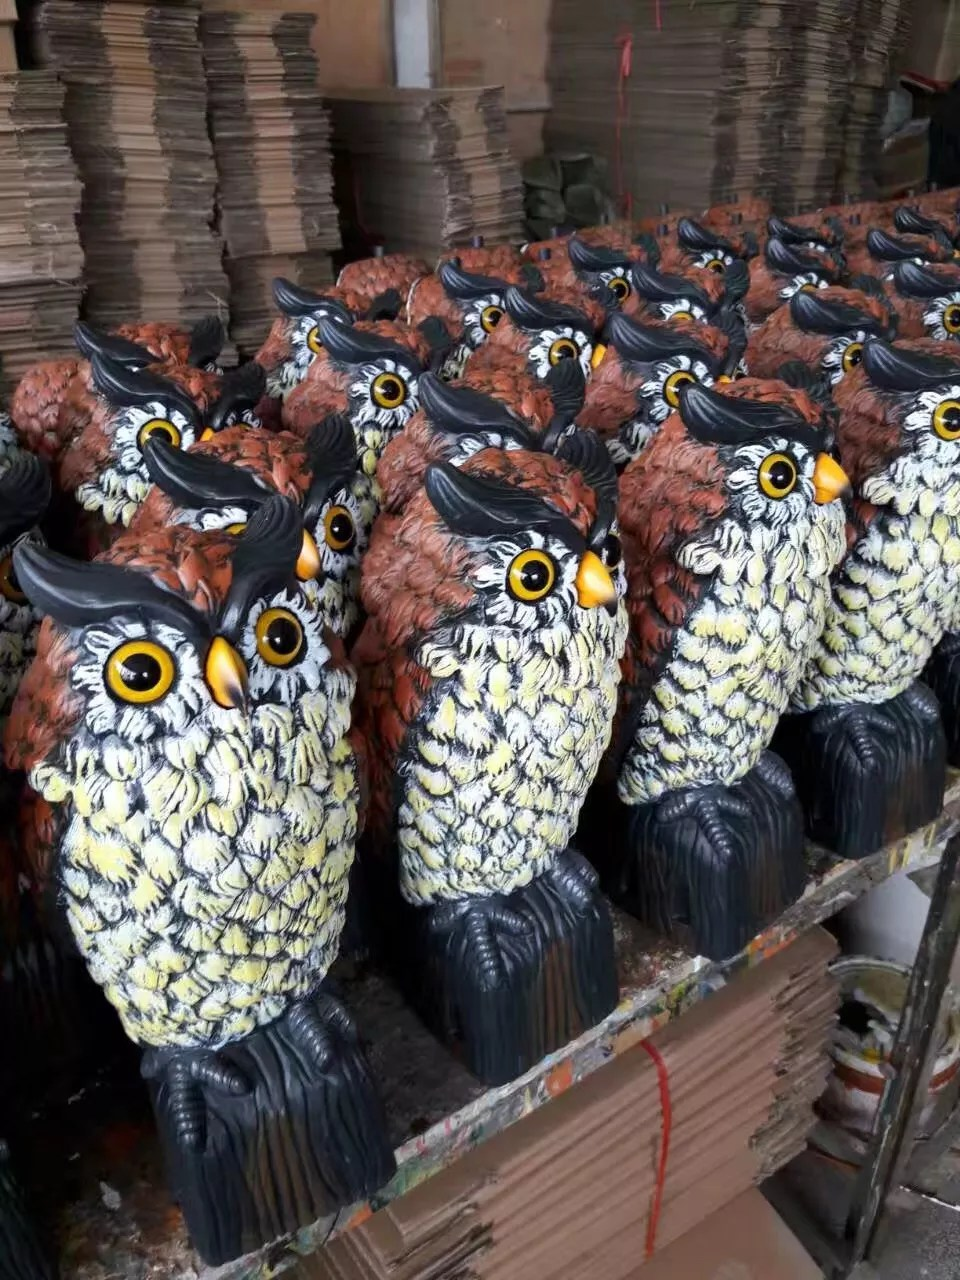 Garten Design Owl Osgoodway1 Large Realistic Plastic Night Action Owl Decoy Bird Statue Crow Scarer Scarecrow With Rotating Head Buy Plastic Action Owl Plastic Night